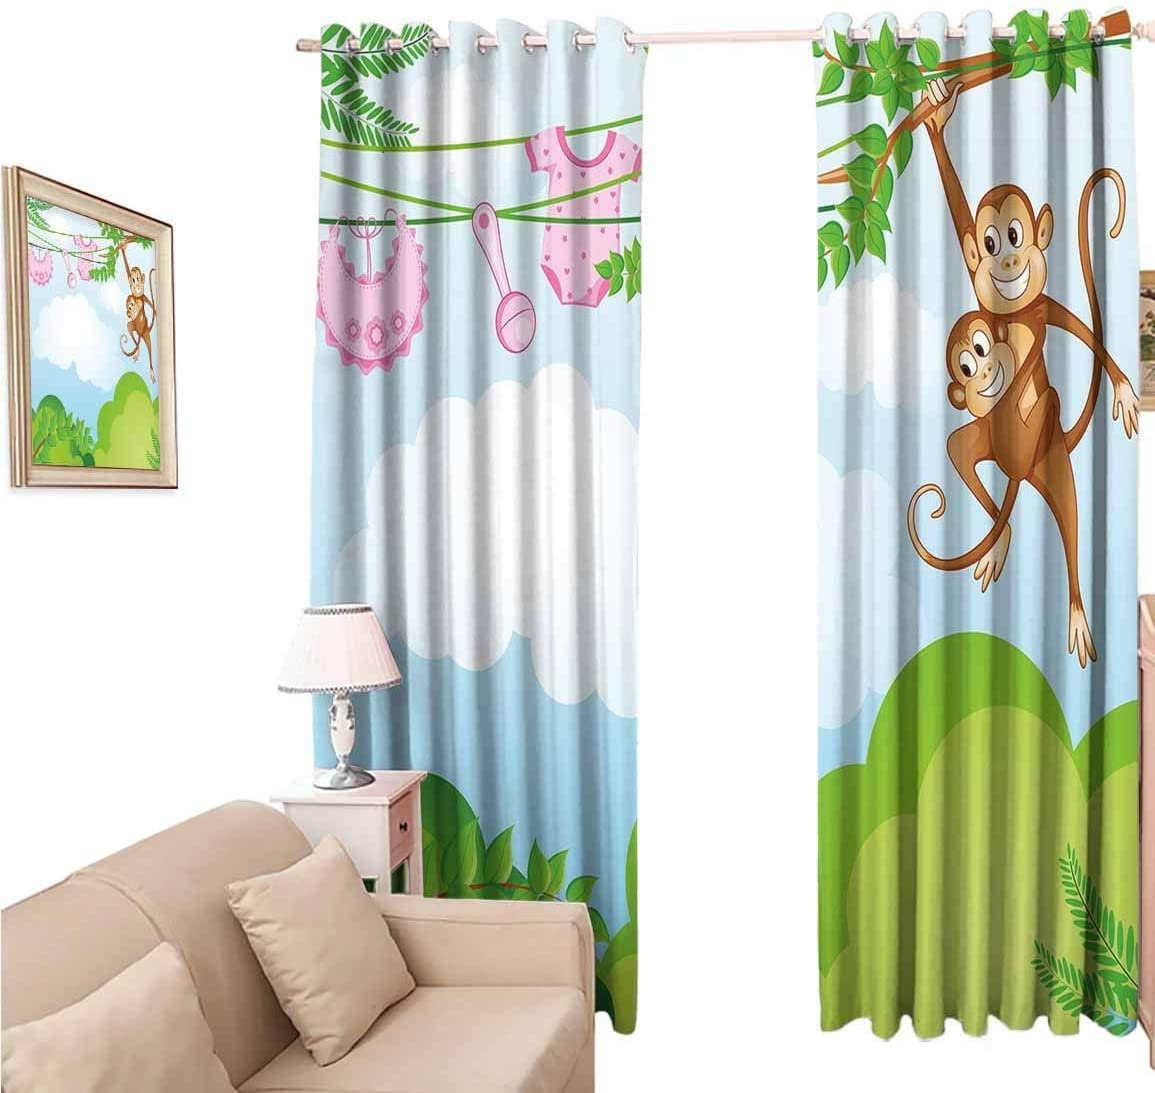 oobon Blackout Wide Curtains 108 Inches, Nursery Monkey Swinging with The Kid Baby Clothes Chimpanzee Jungle Joy Togetherness, for Bedroom and Living Room, 108x108 inch